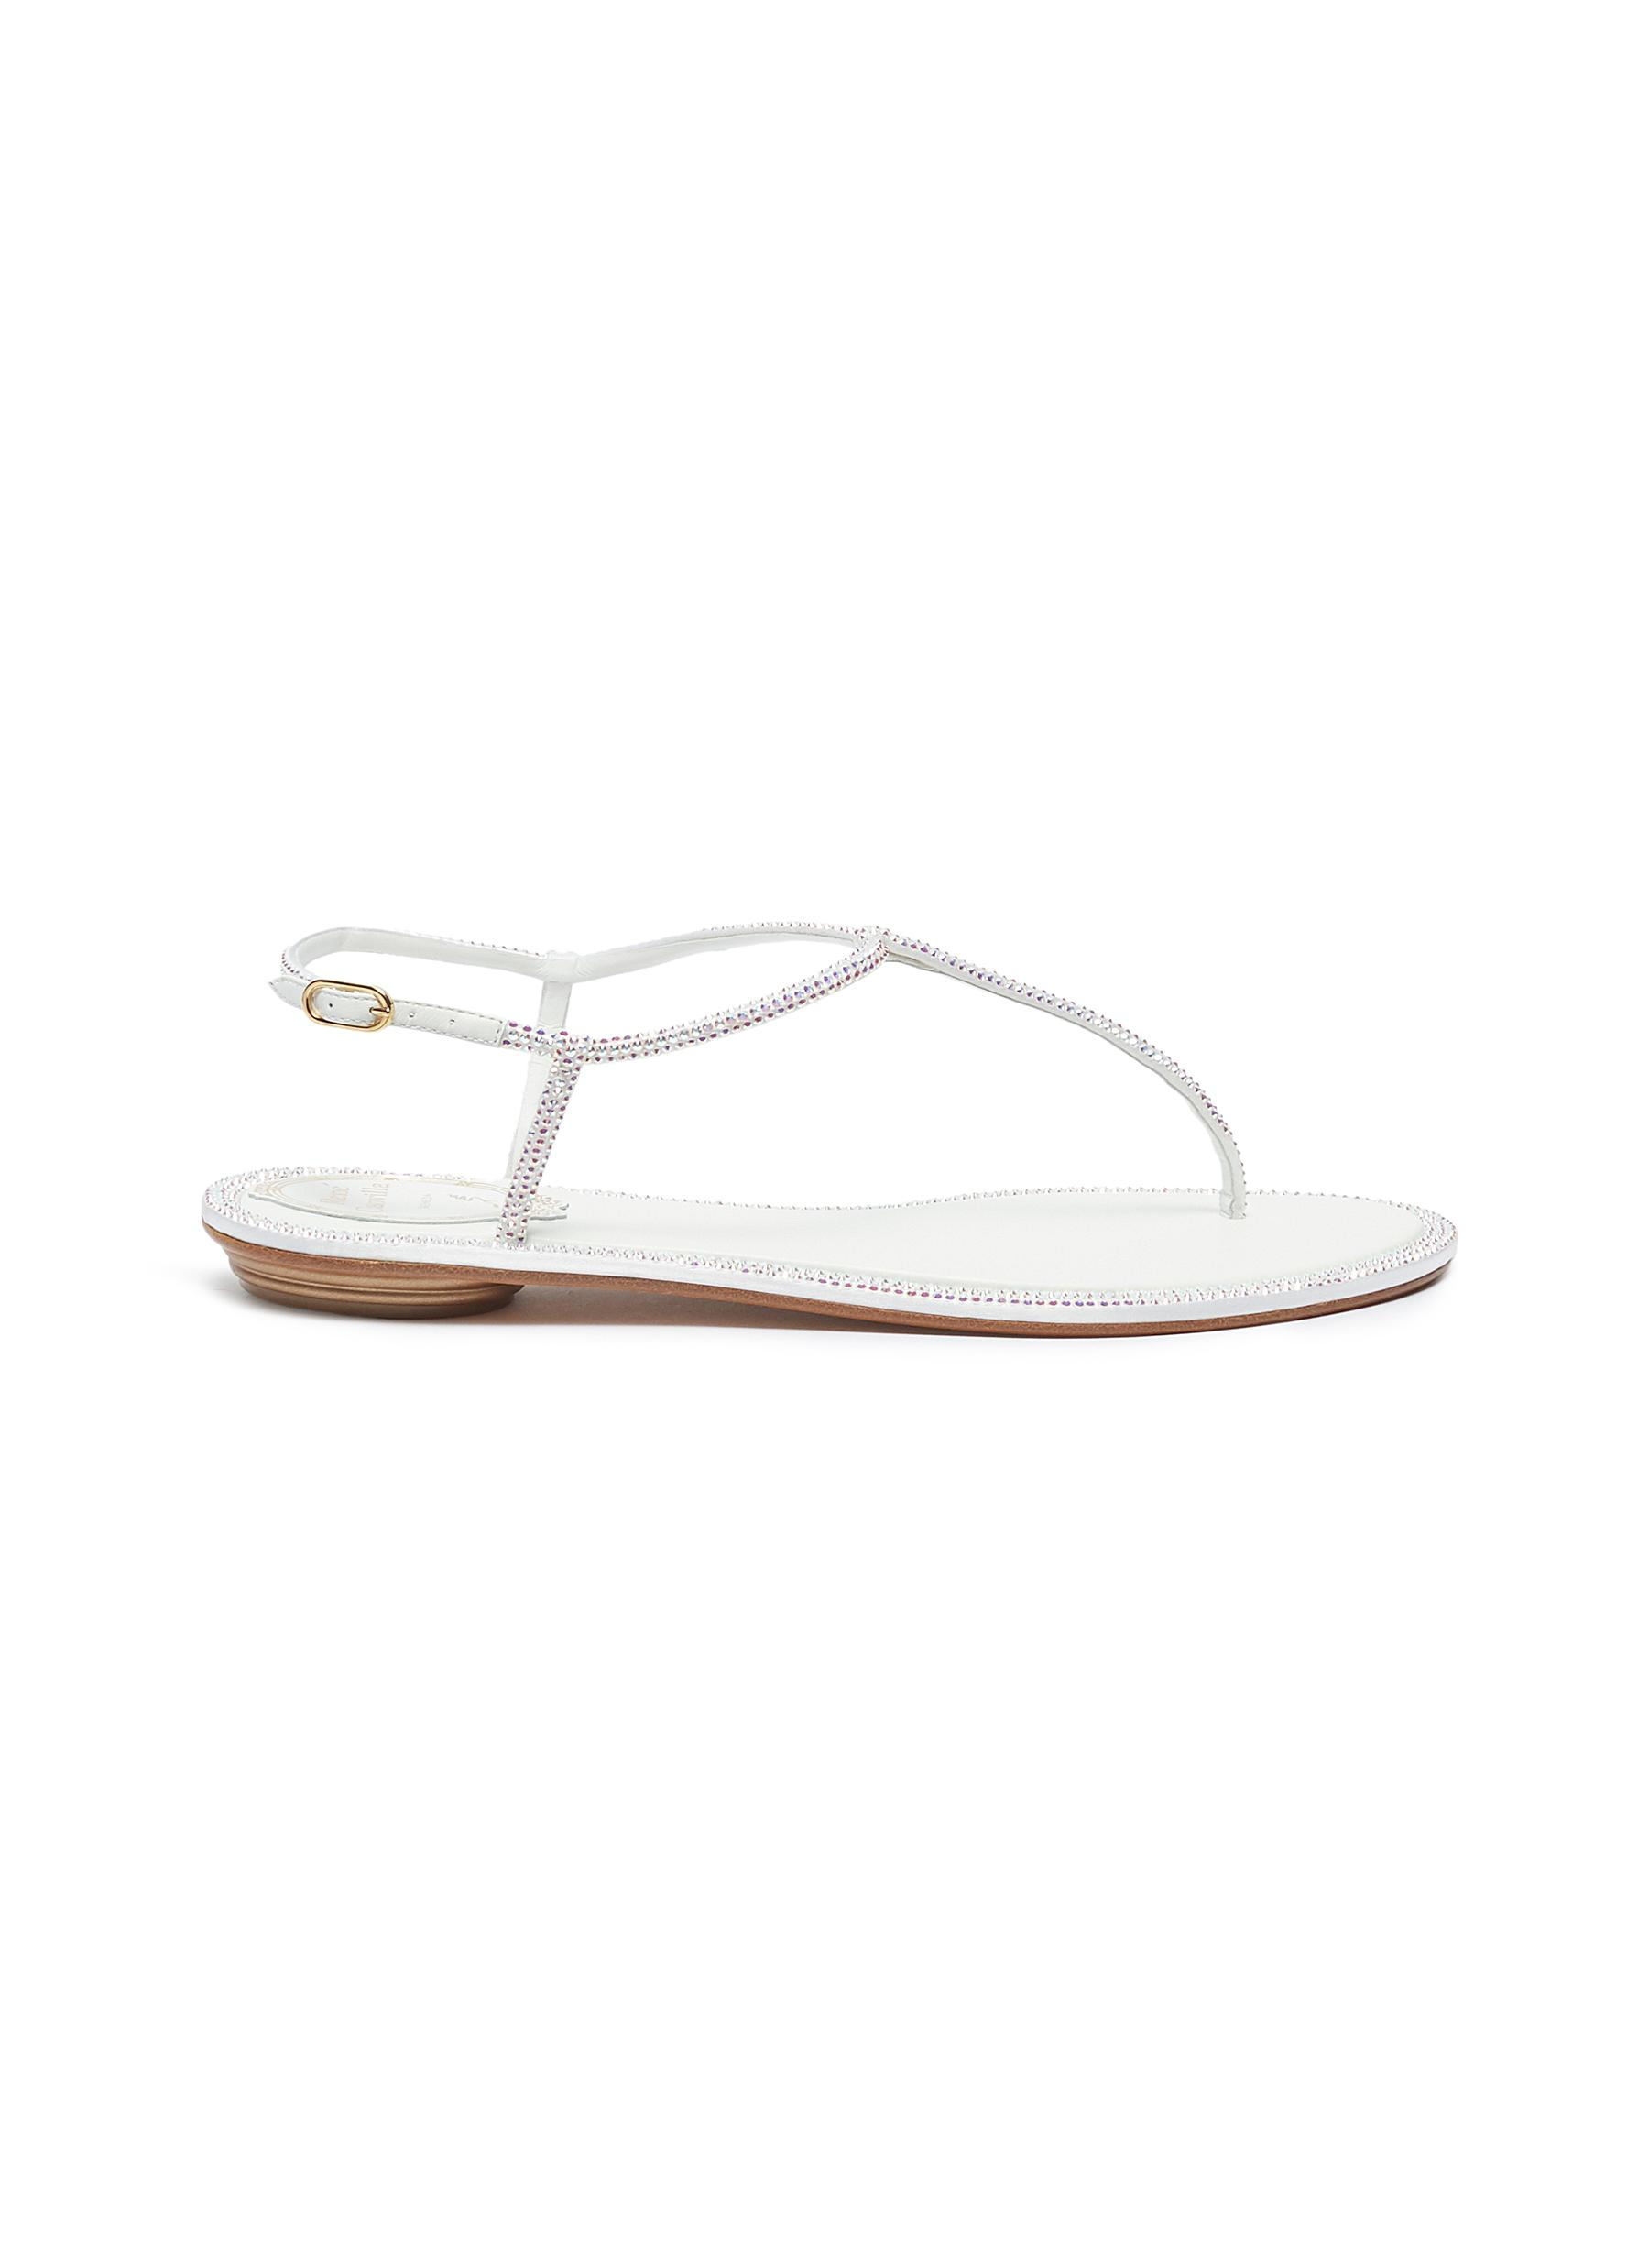 Diana strass strap satin thong sandals by René Caovilla